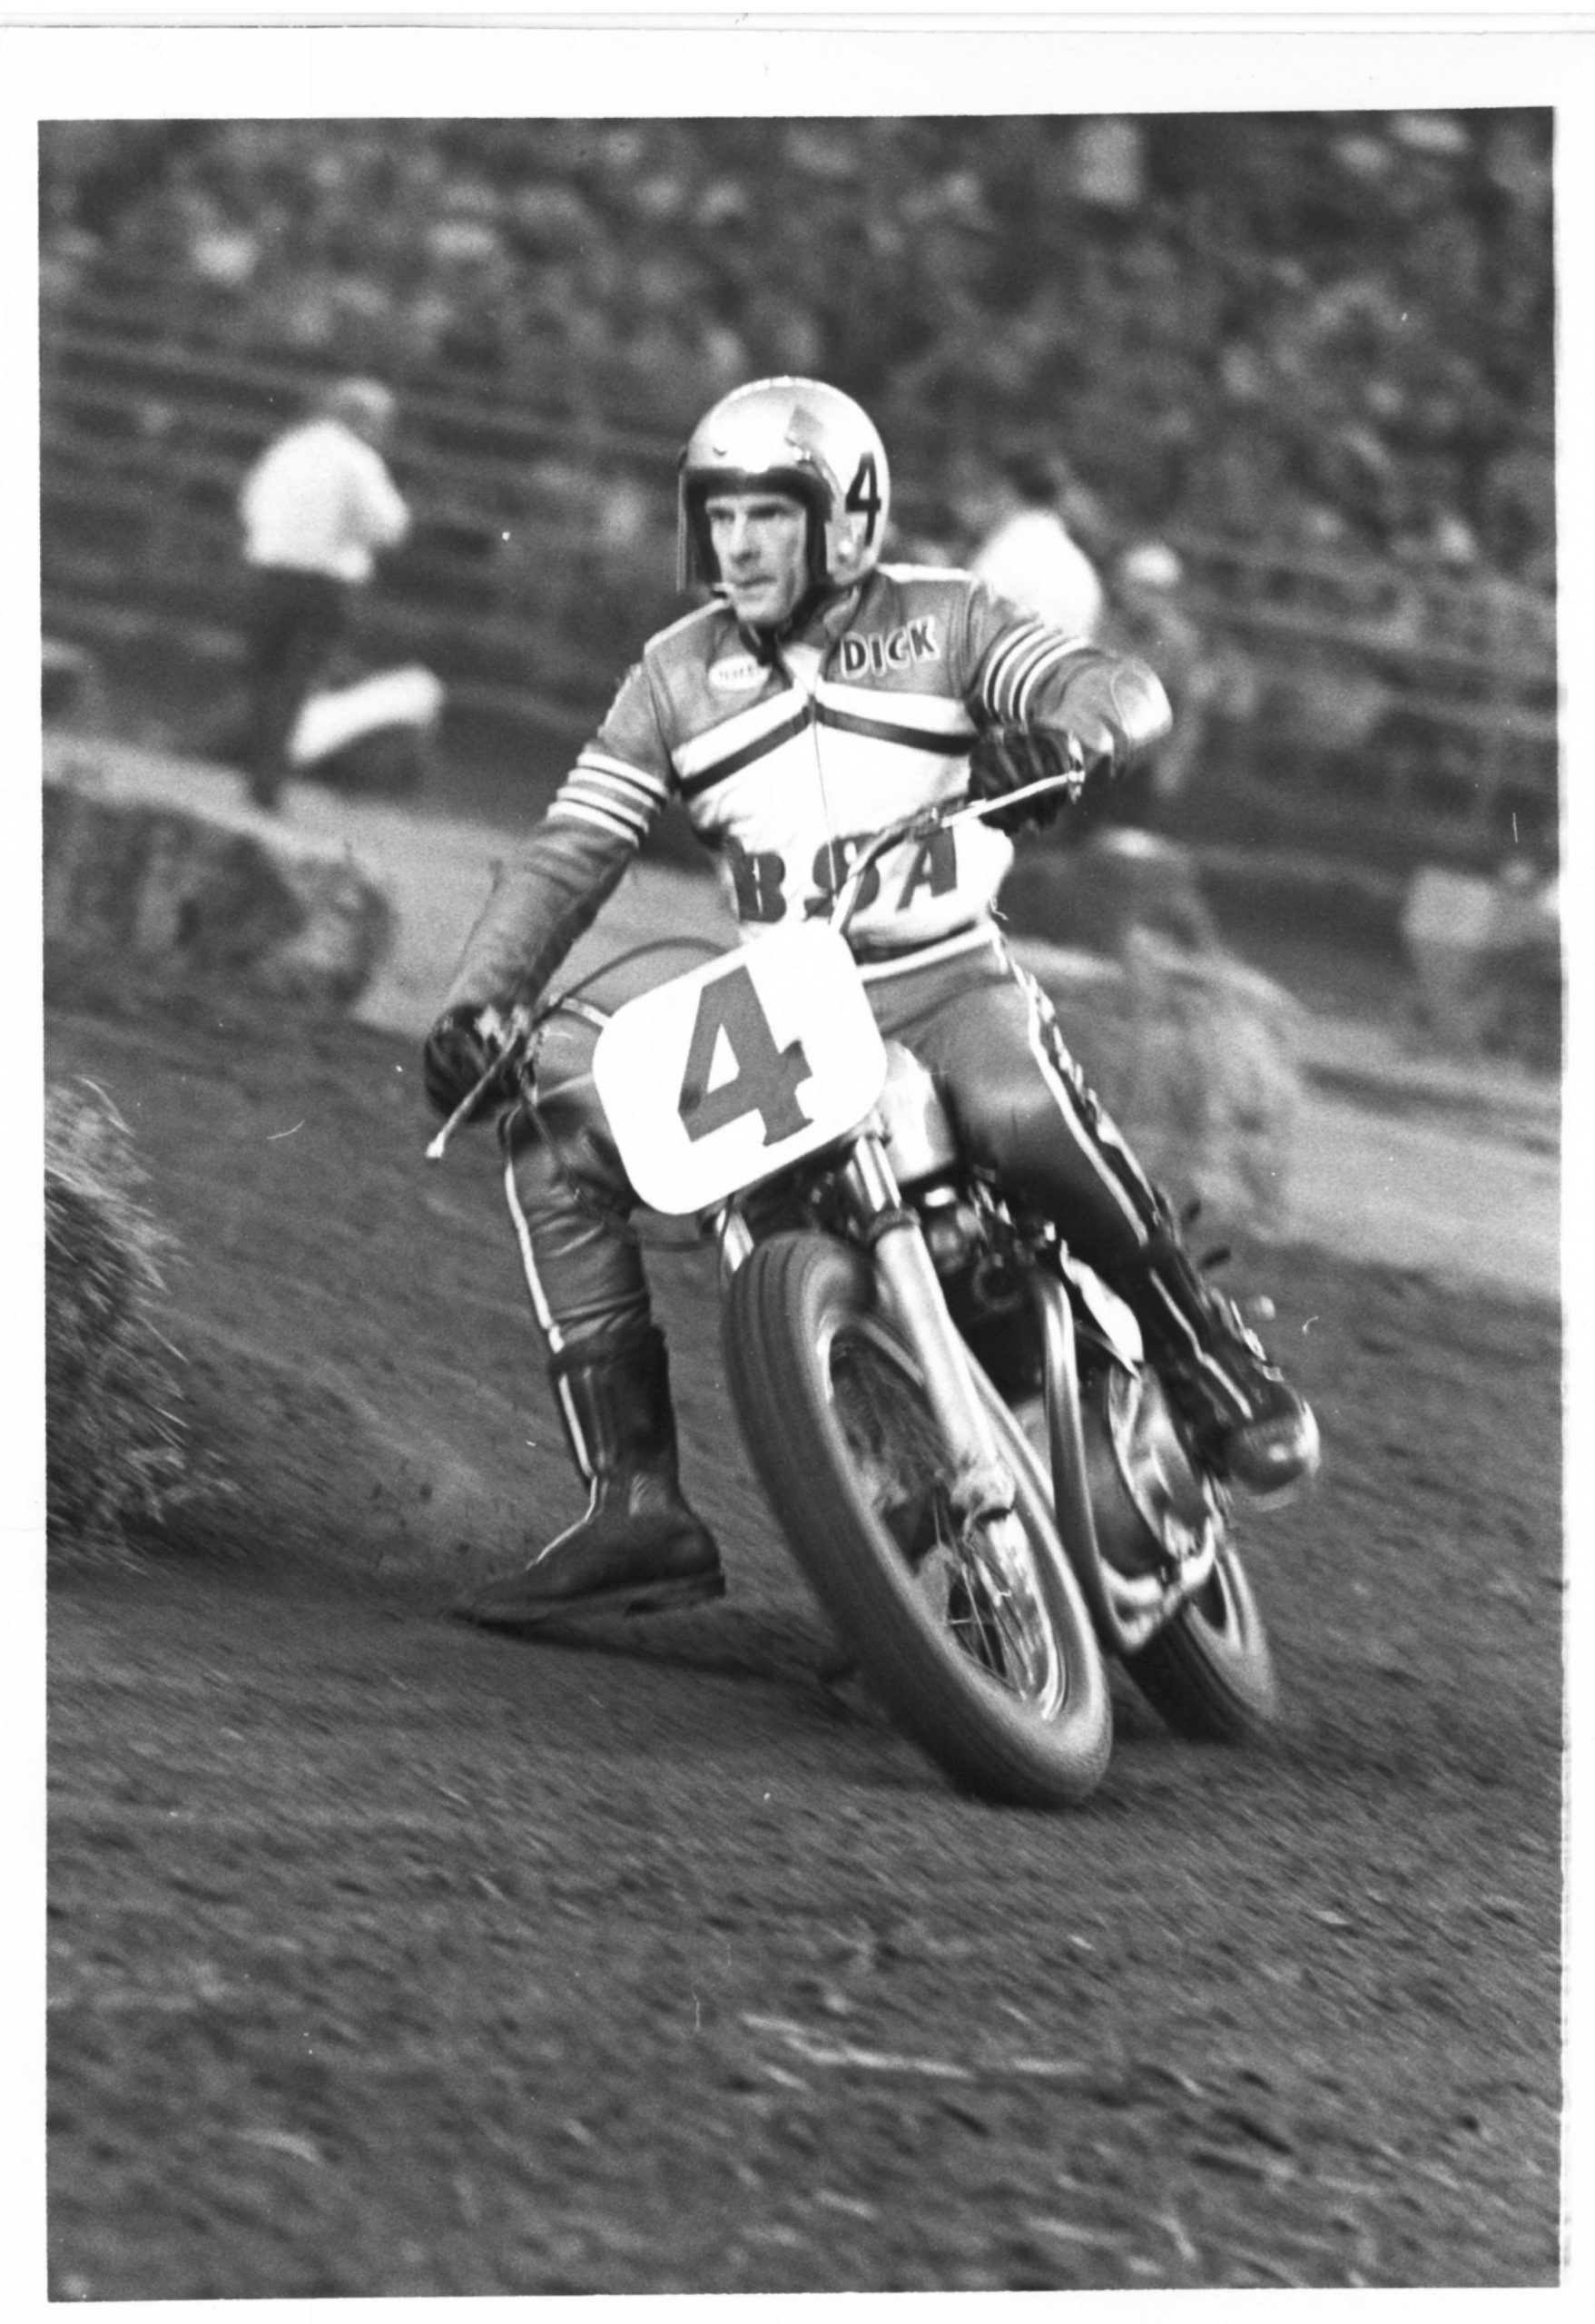 210428 AMA Motorcycle Hall of Famer and Racing Legend Dick Mann Passes (2)